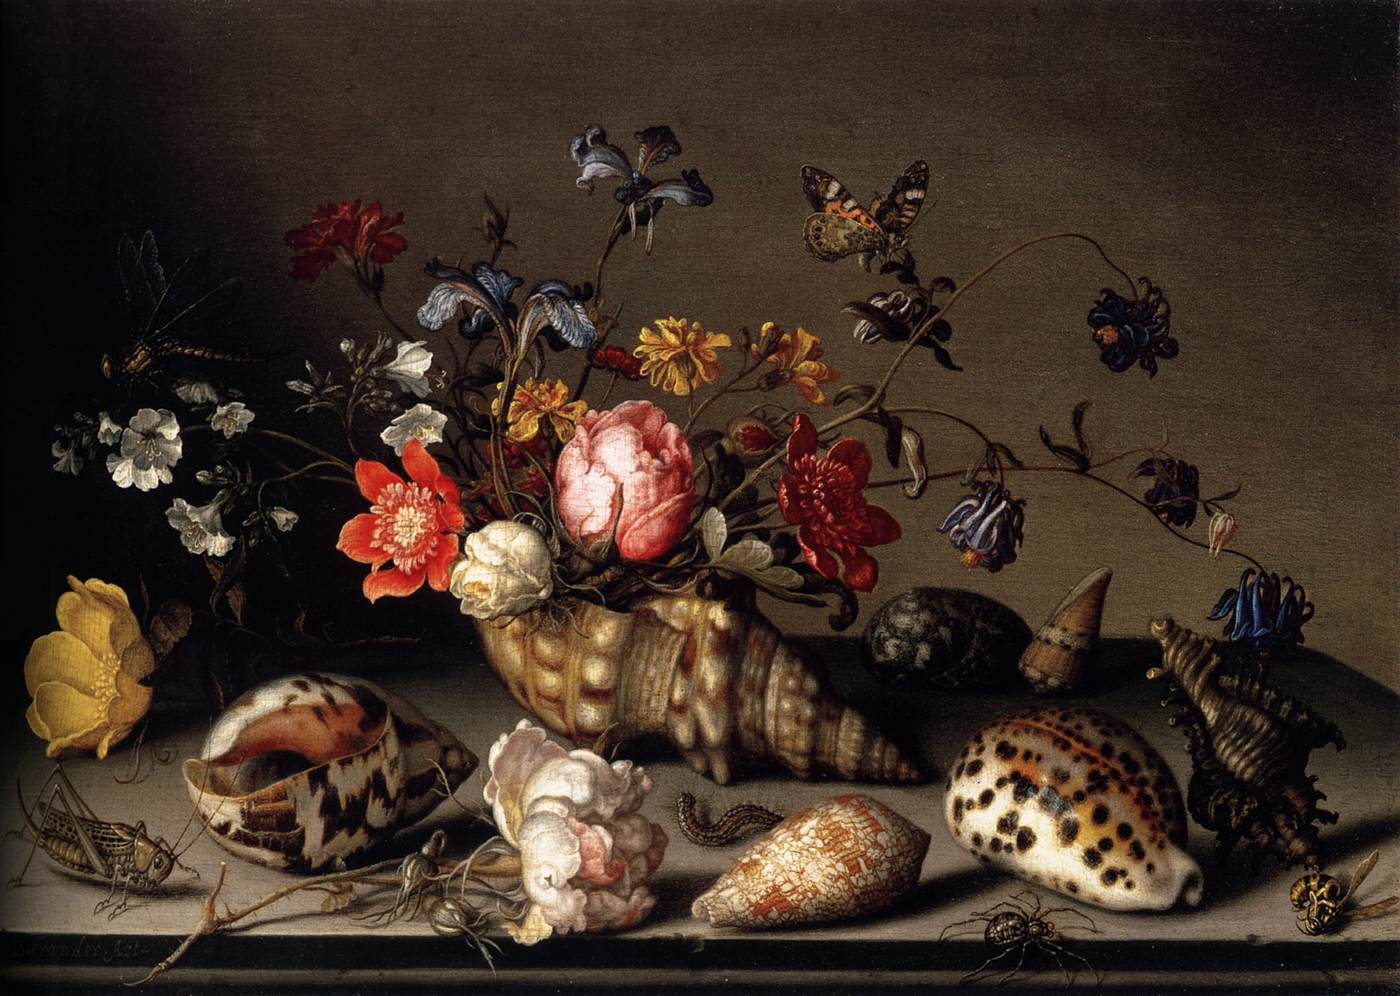 Still Life of Flowers, Shells, and Insects 1635